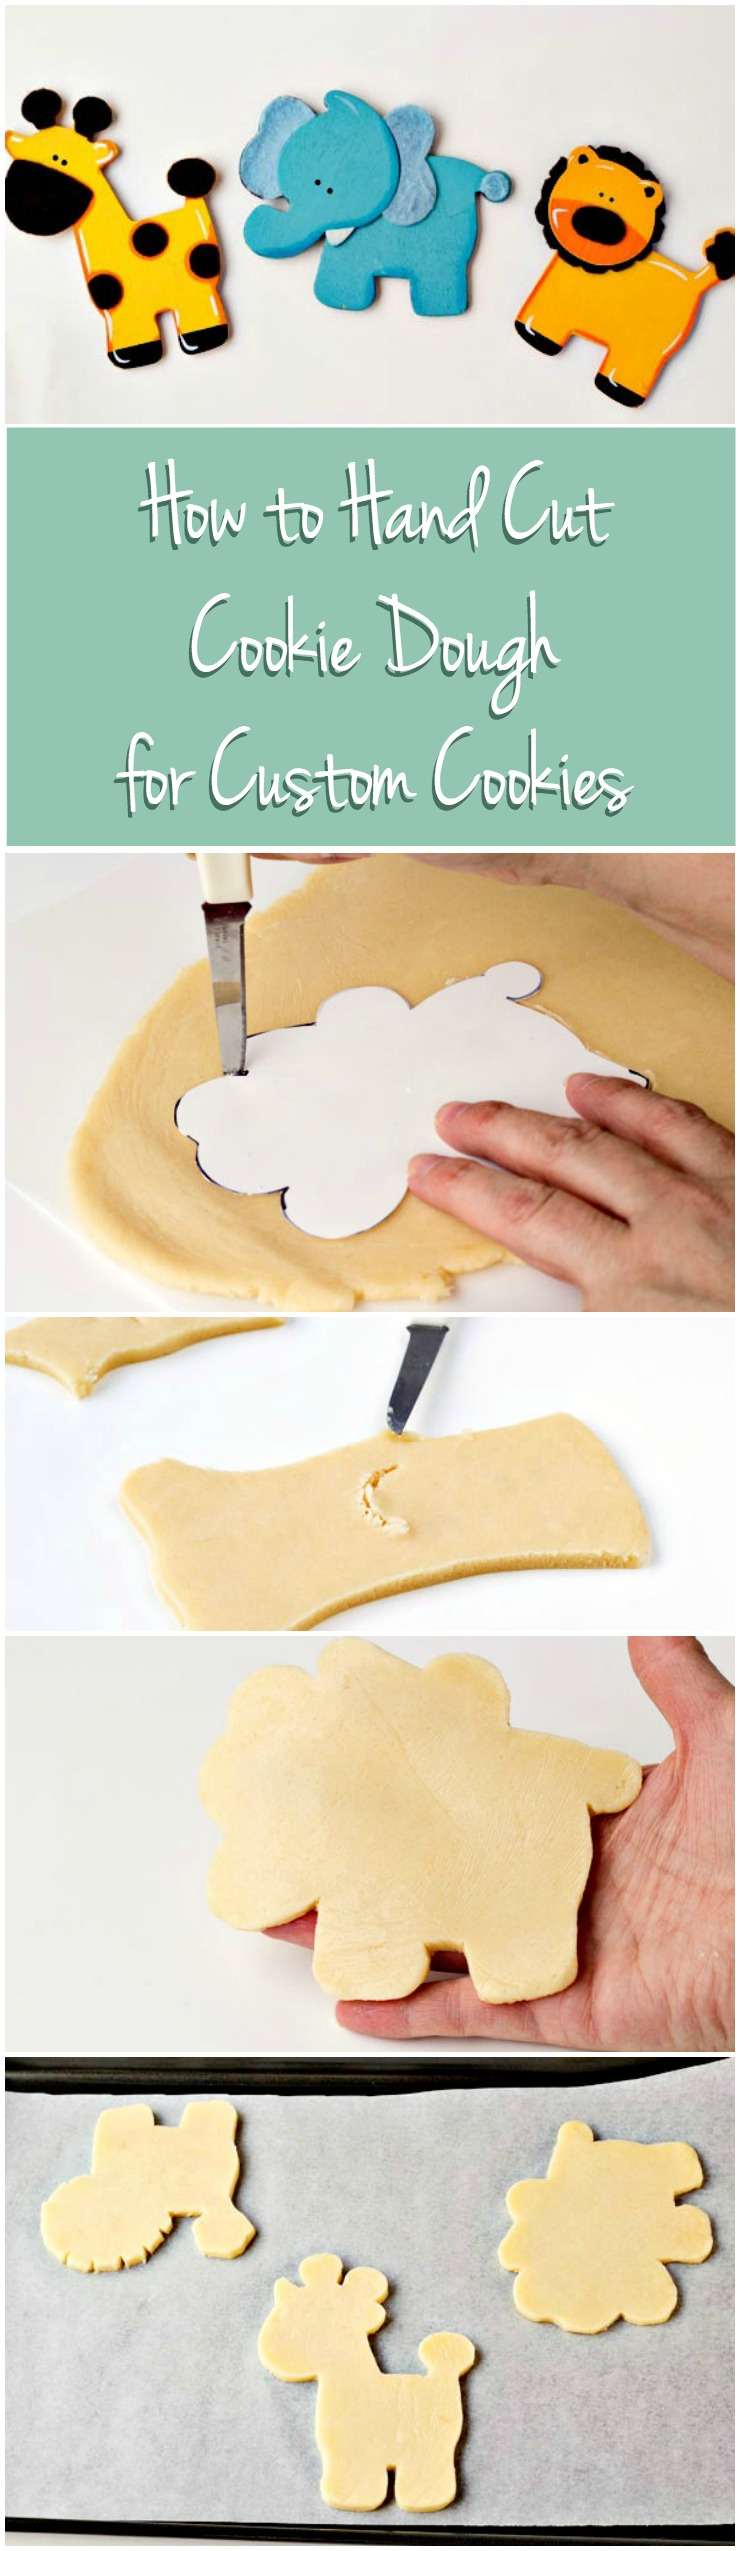 How to Hand Cut Cookie Dough | The Bearfoot Baker